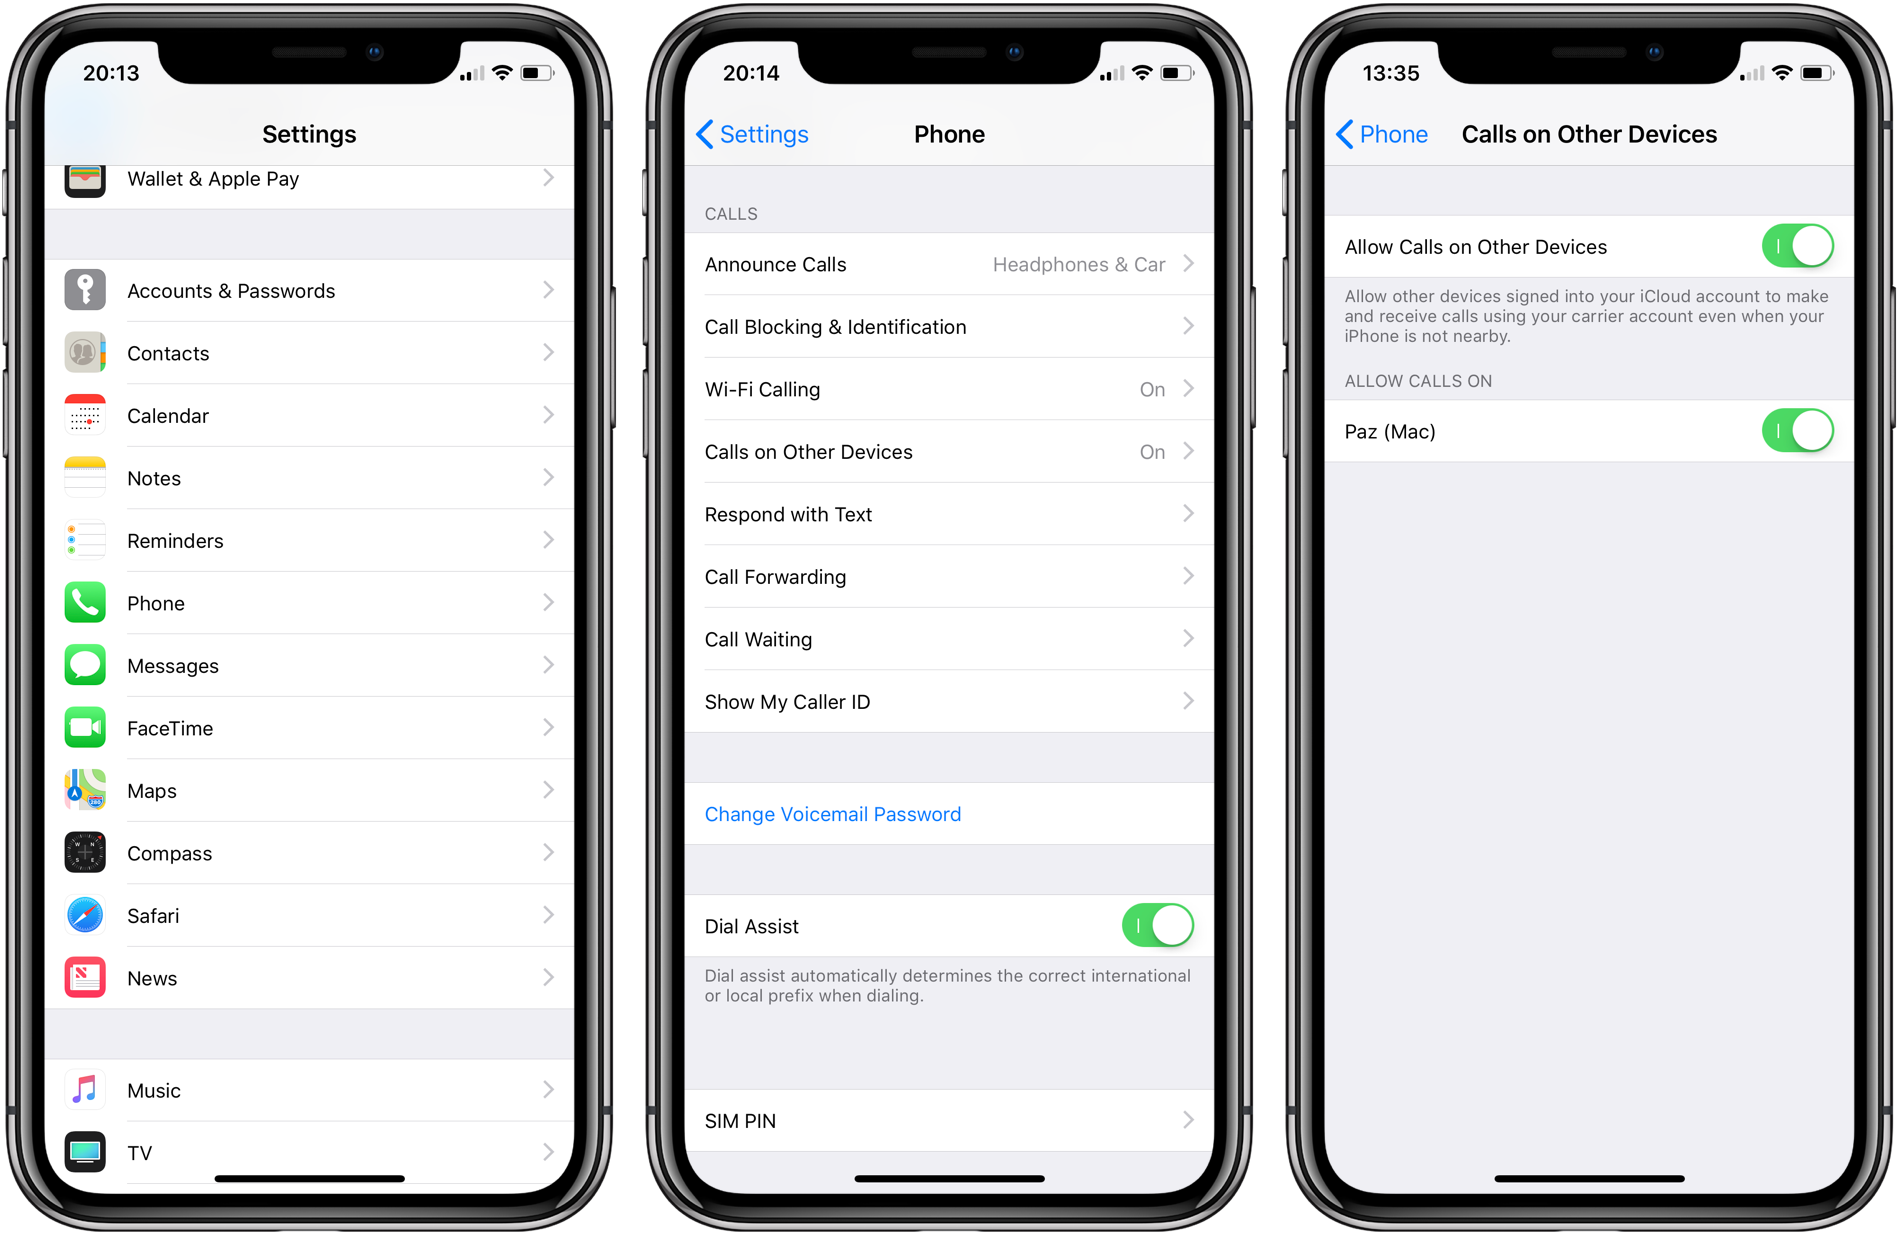 How to enable 'Calls on Other Devices' like iPad or Mac - 9to5Mac